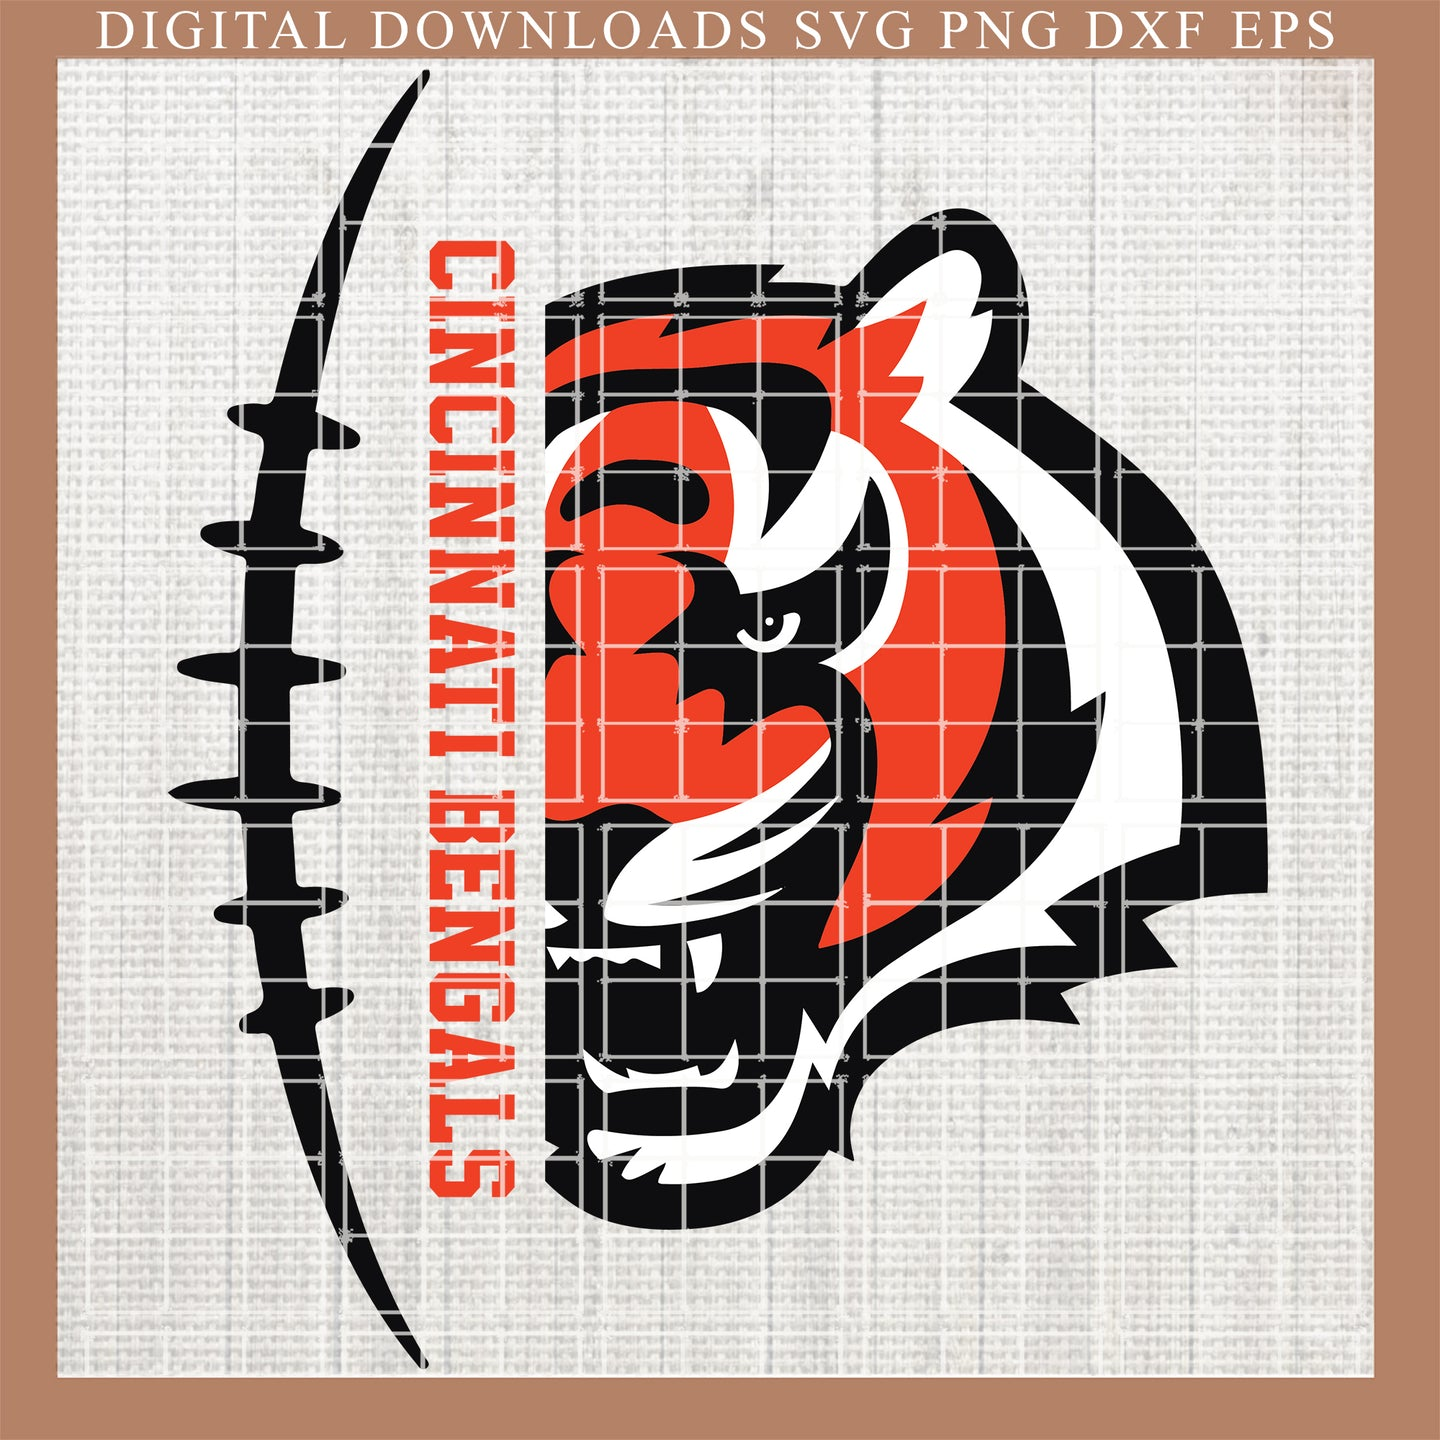 Cincinnati Bengals svg, skull svg, fueled by svg , Bengals svg, NFL , Fingerprints, DNA